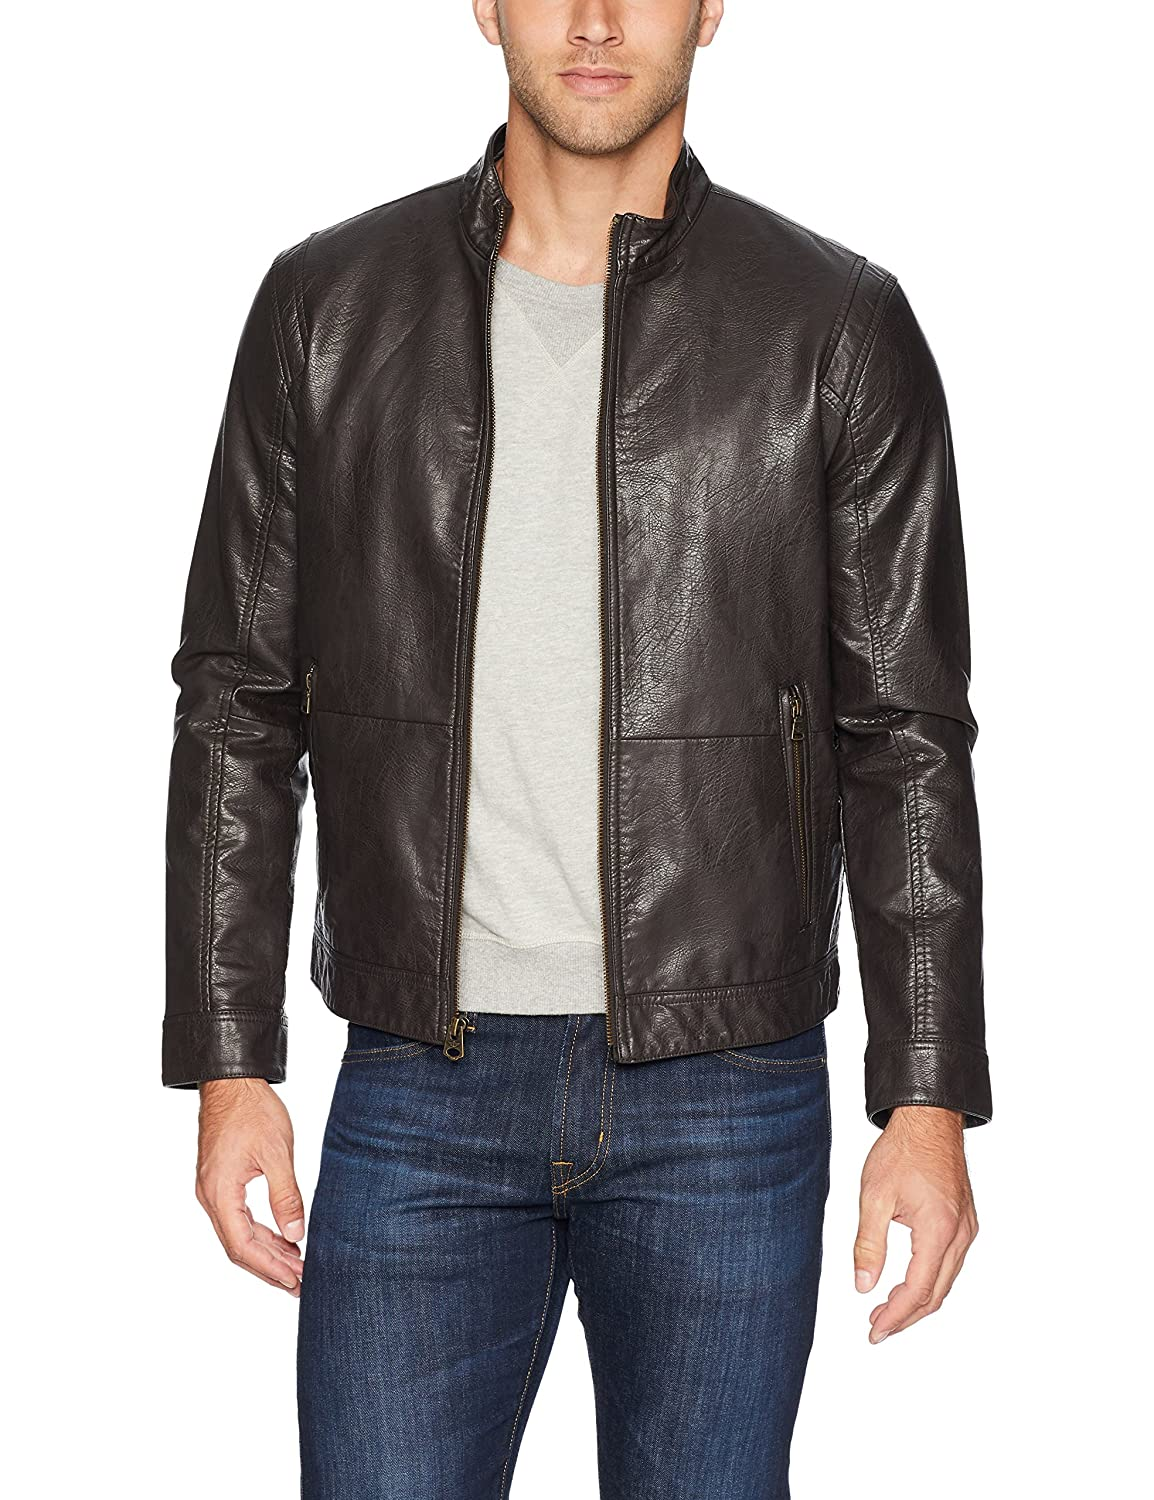 a03a92c33 Dockers Men's The Dylan Faux Leather Racer Jacket at Amazon Men's ...